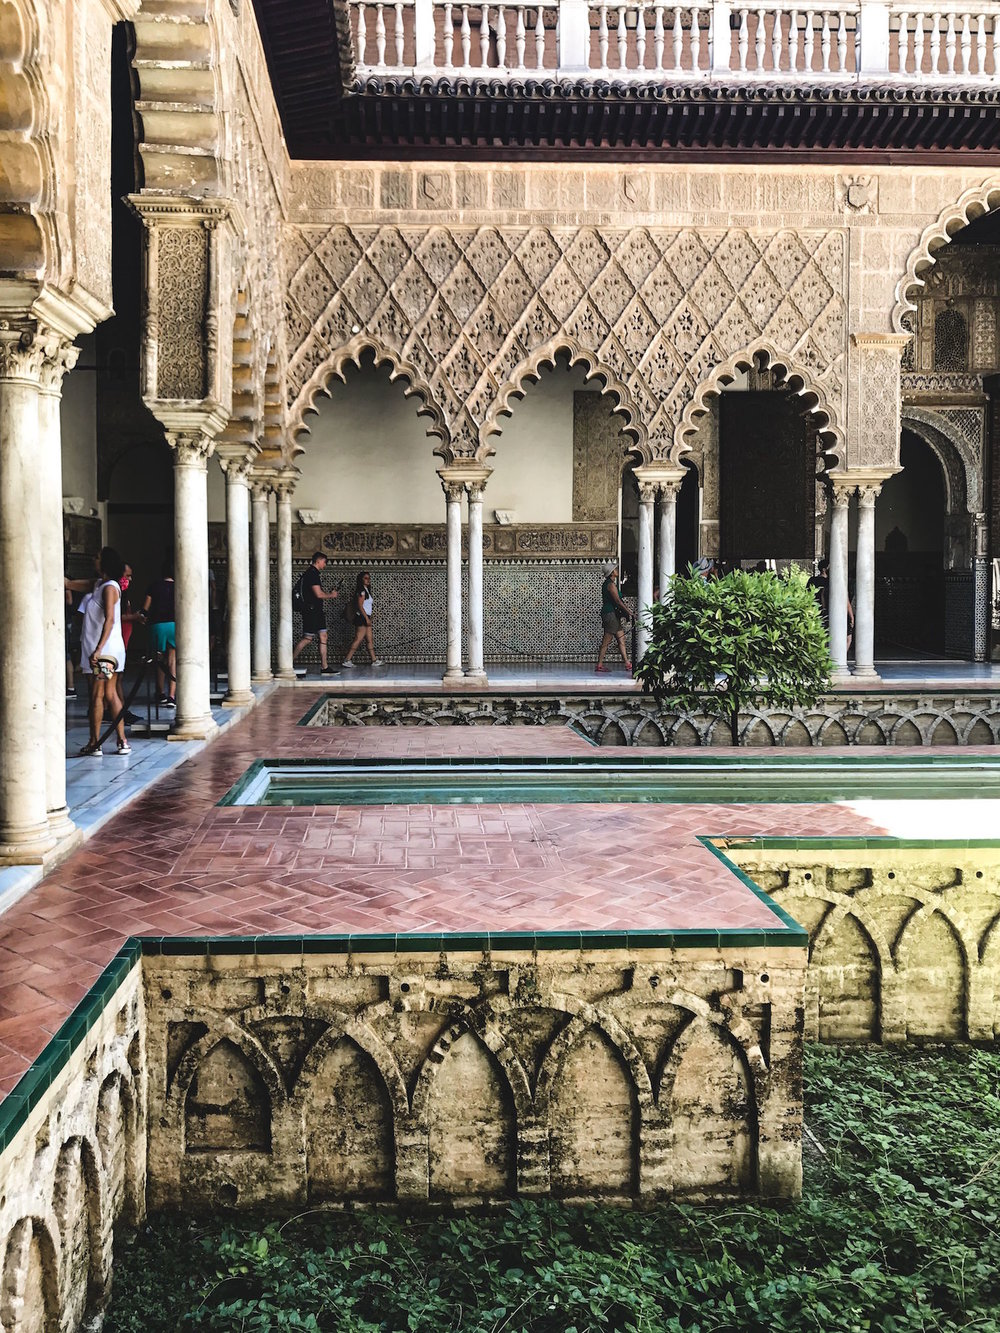 Courtyard of the Maidens at the Alcázar in Seville, Spain